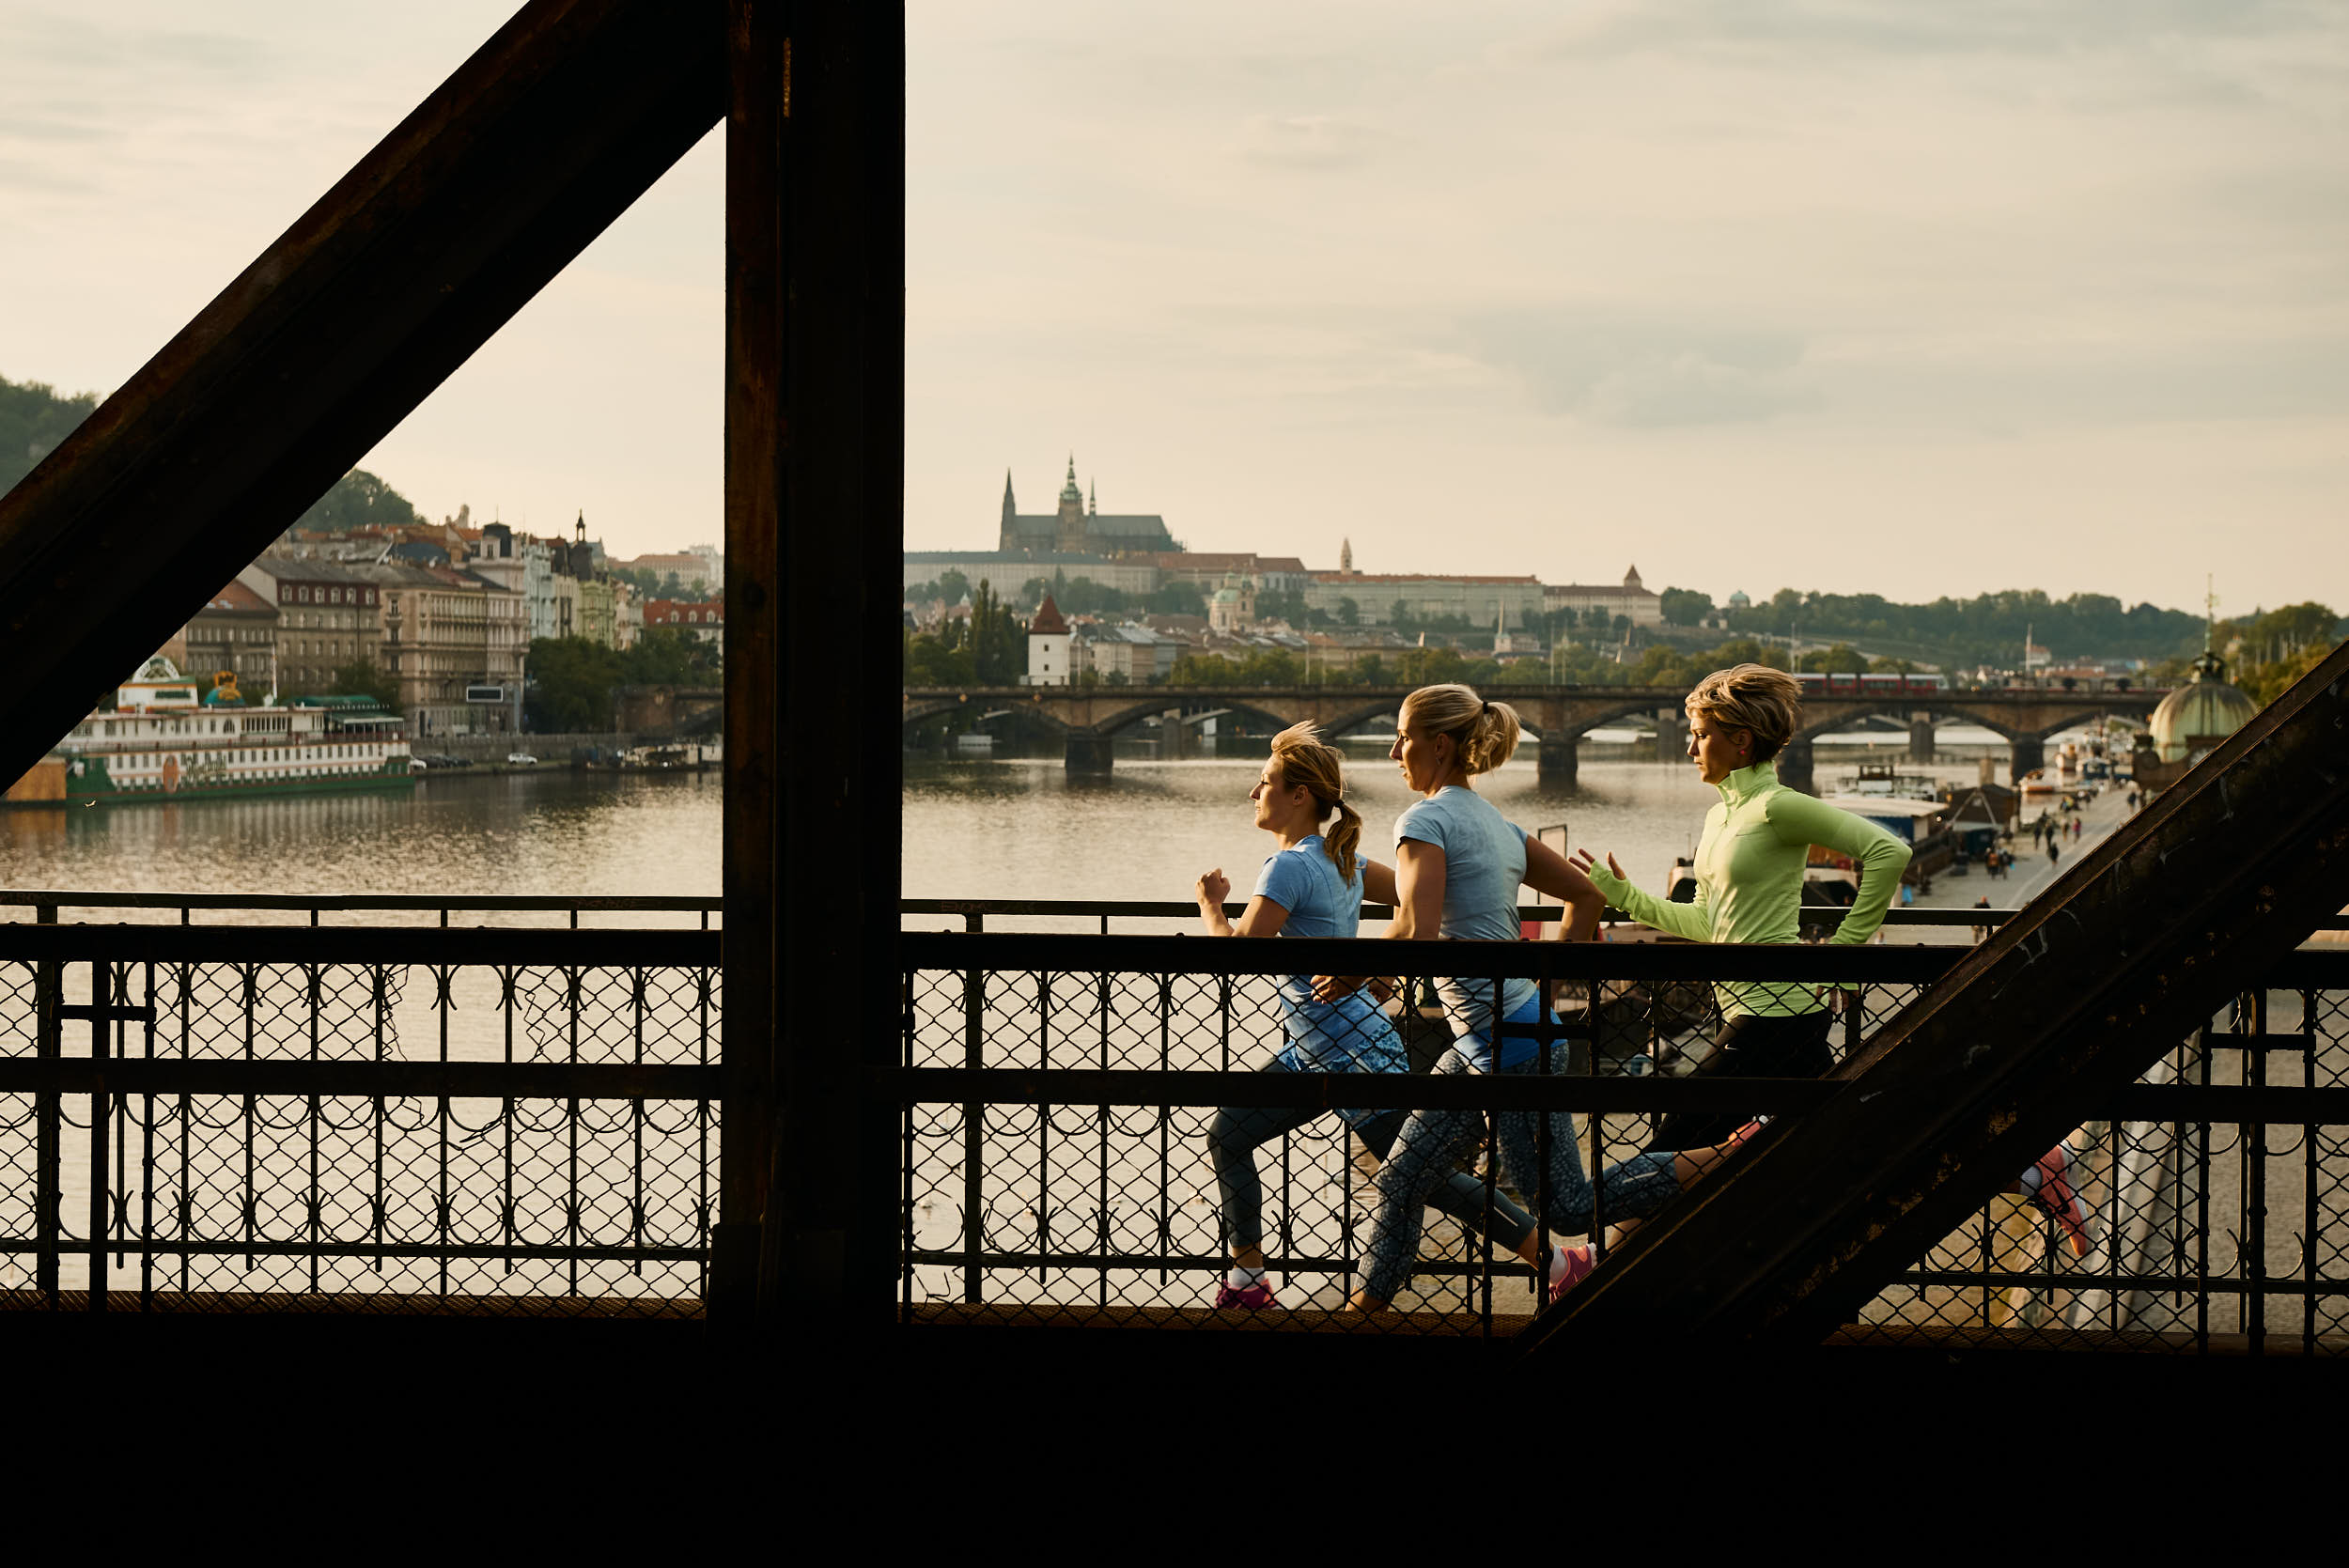 Group of women running across a railway bridge with Prague Castle in the background. Sport apparel advertising campaign.